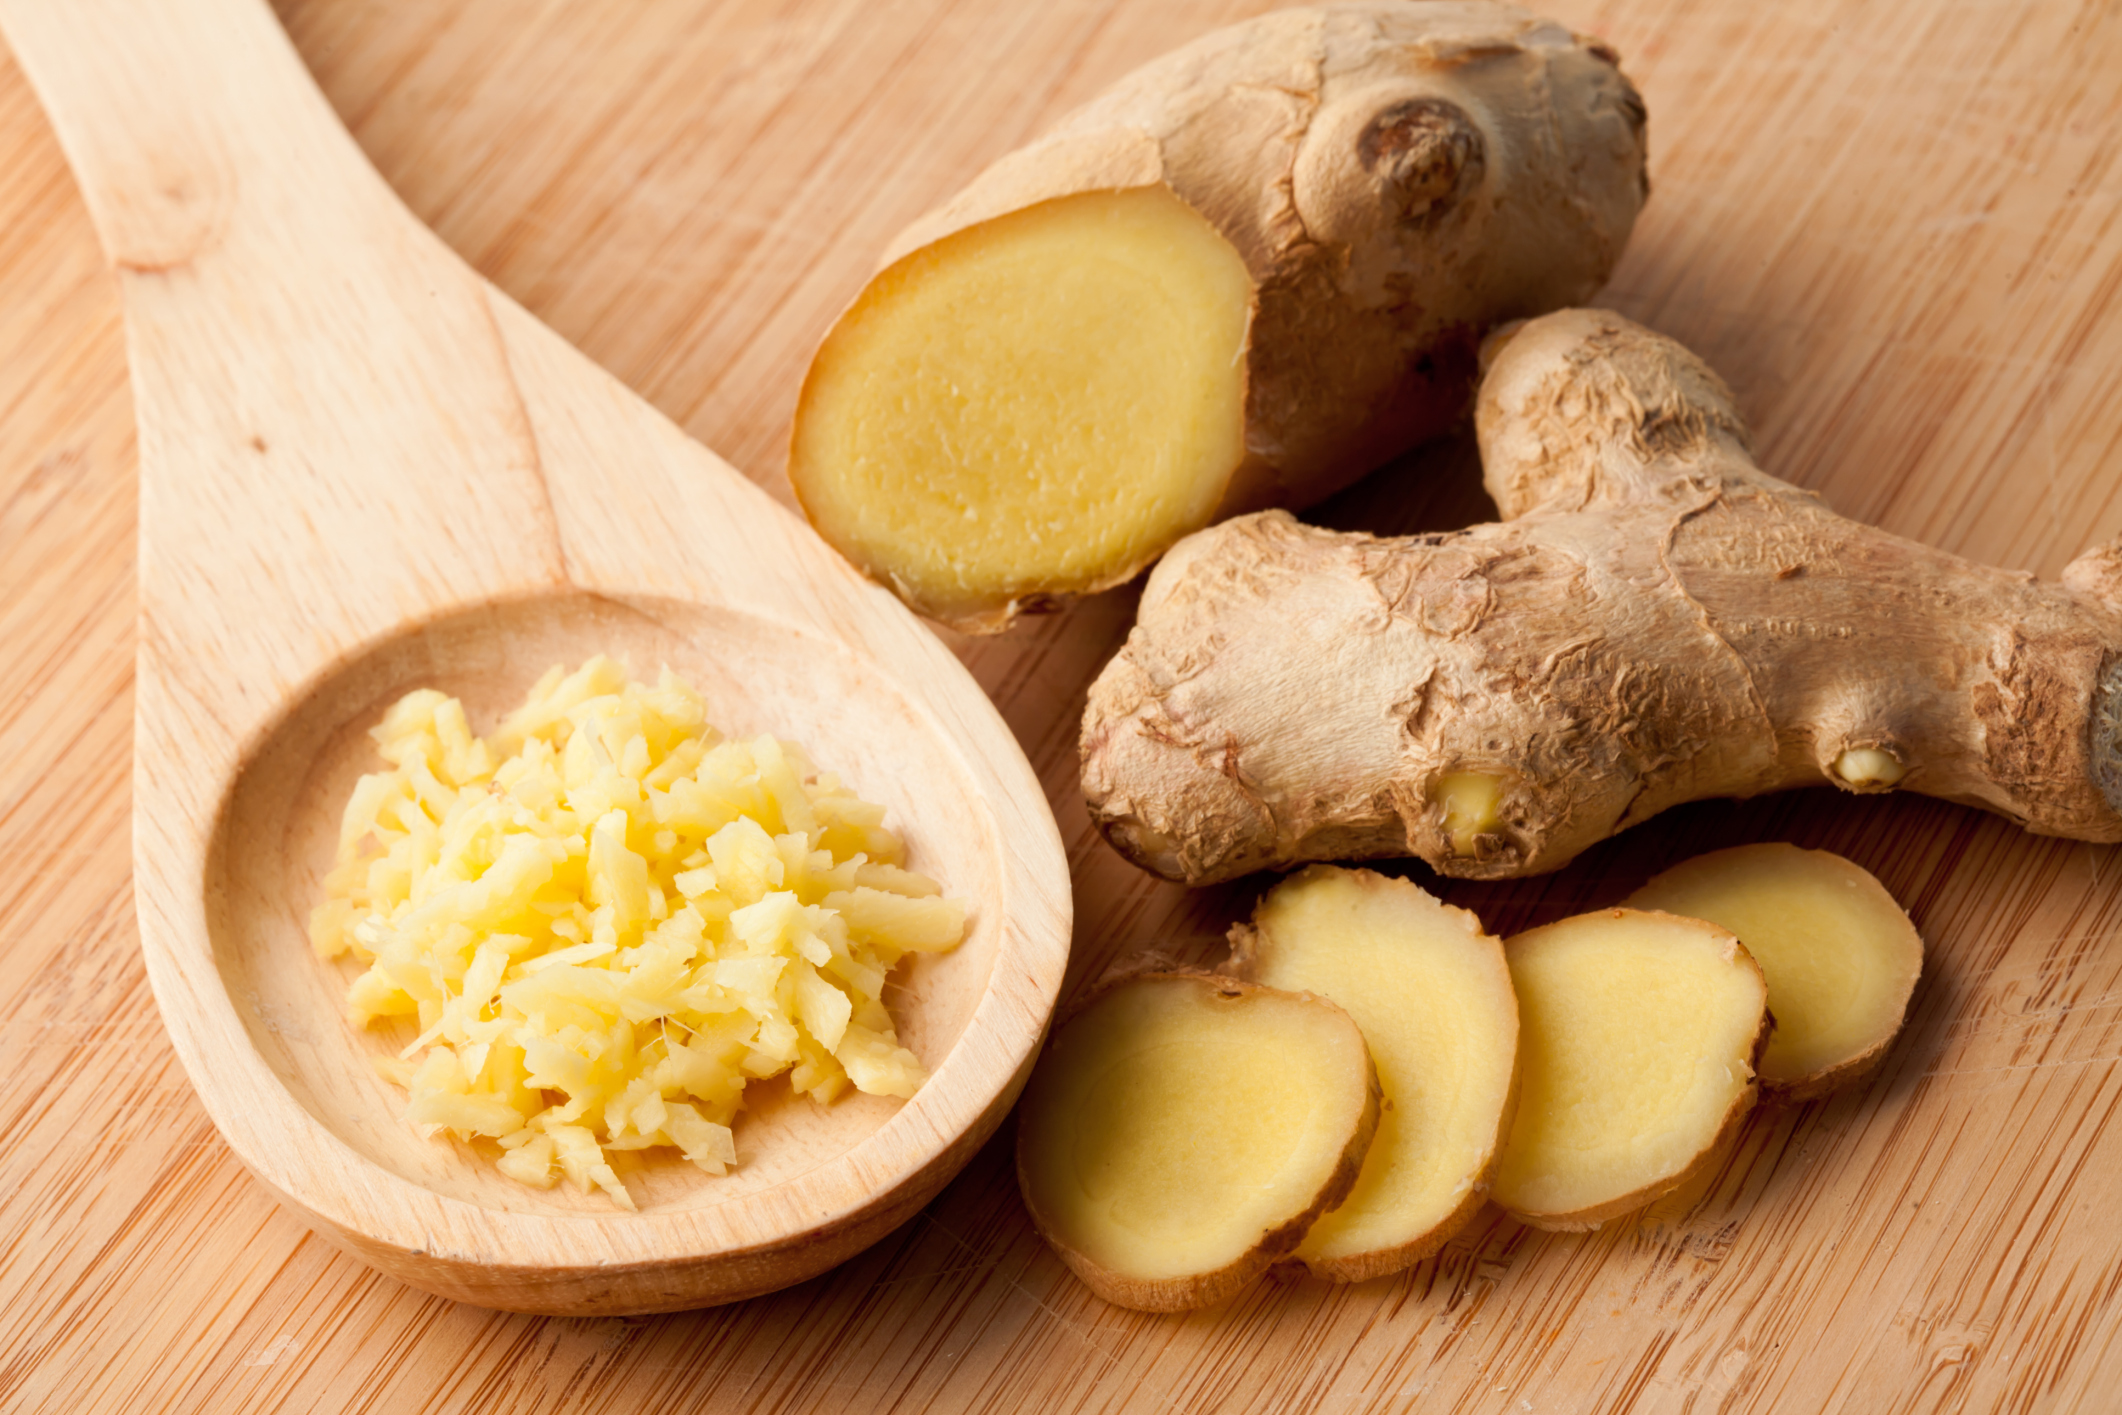 Eating ginger root during pregnancy